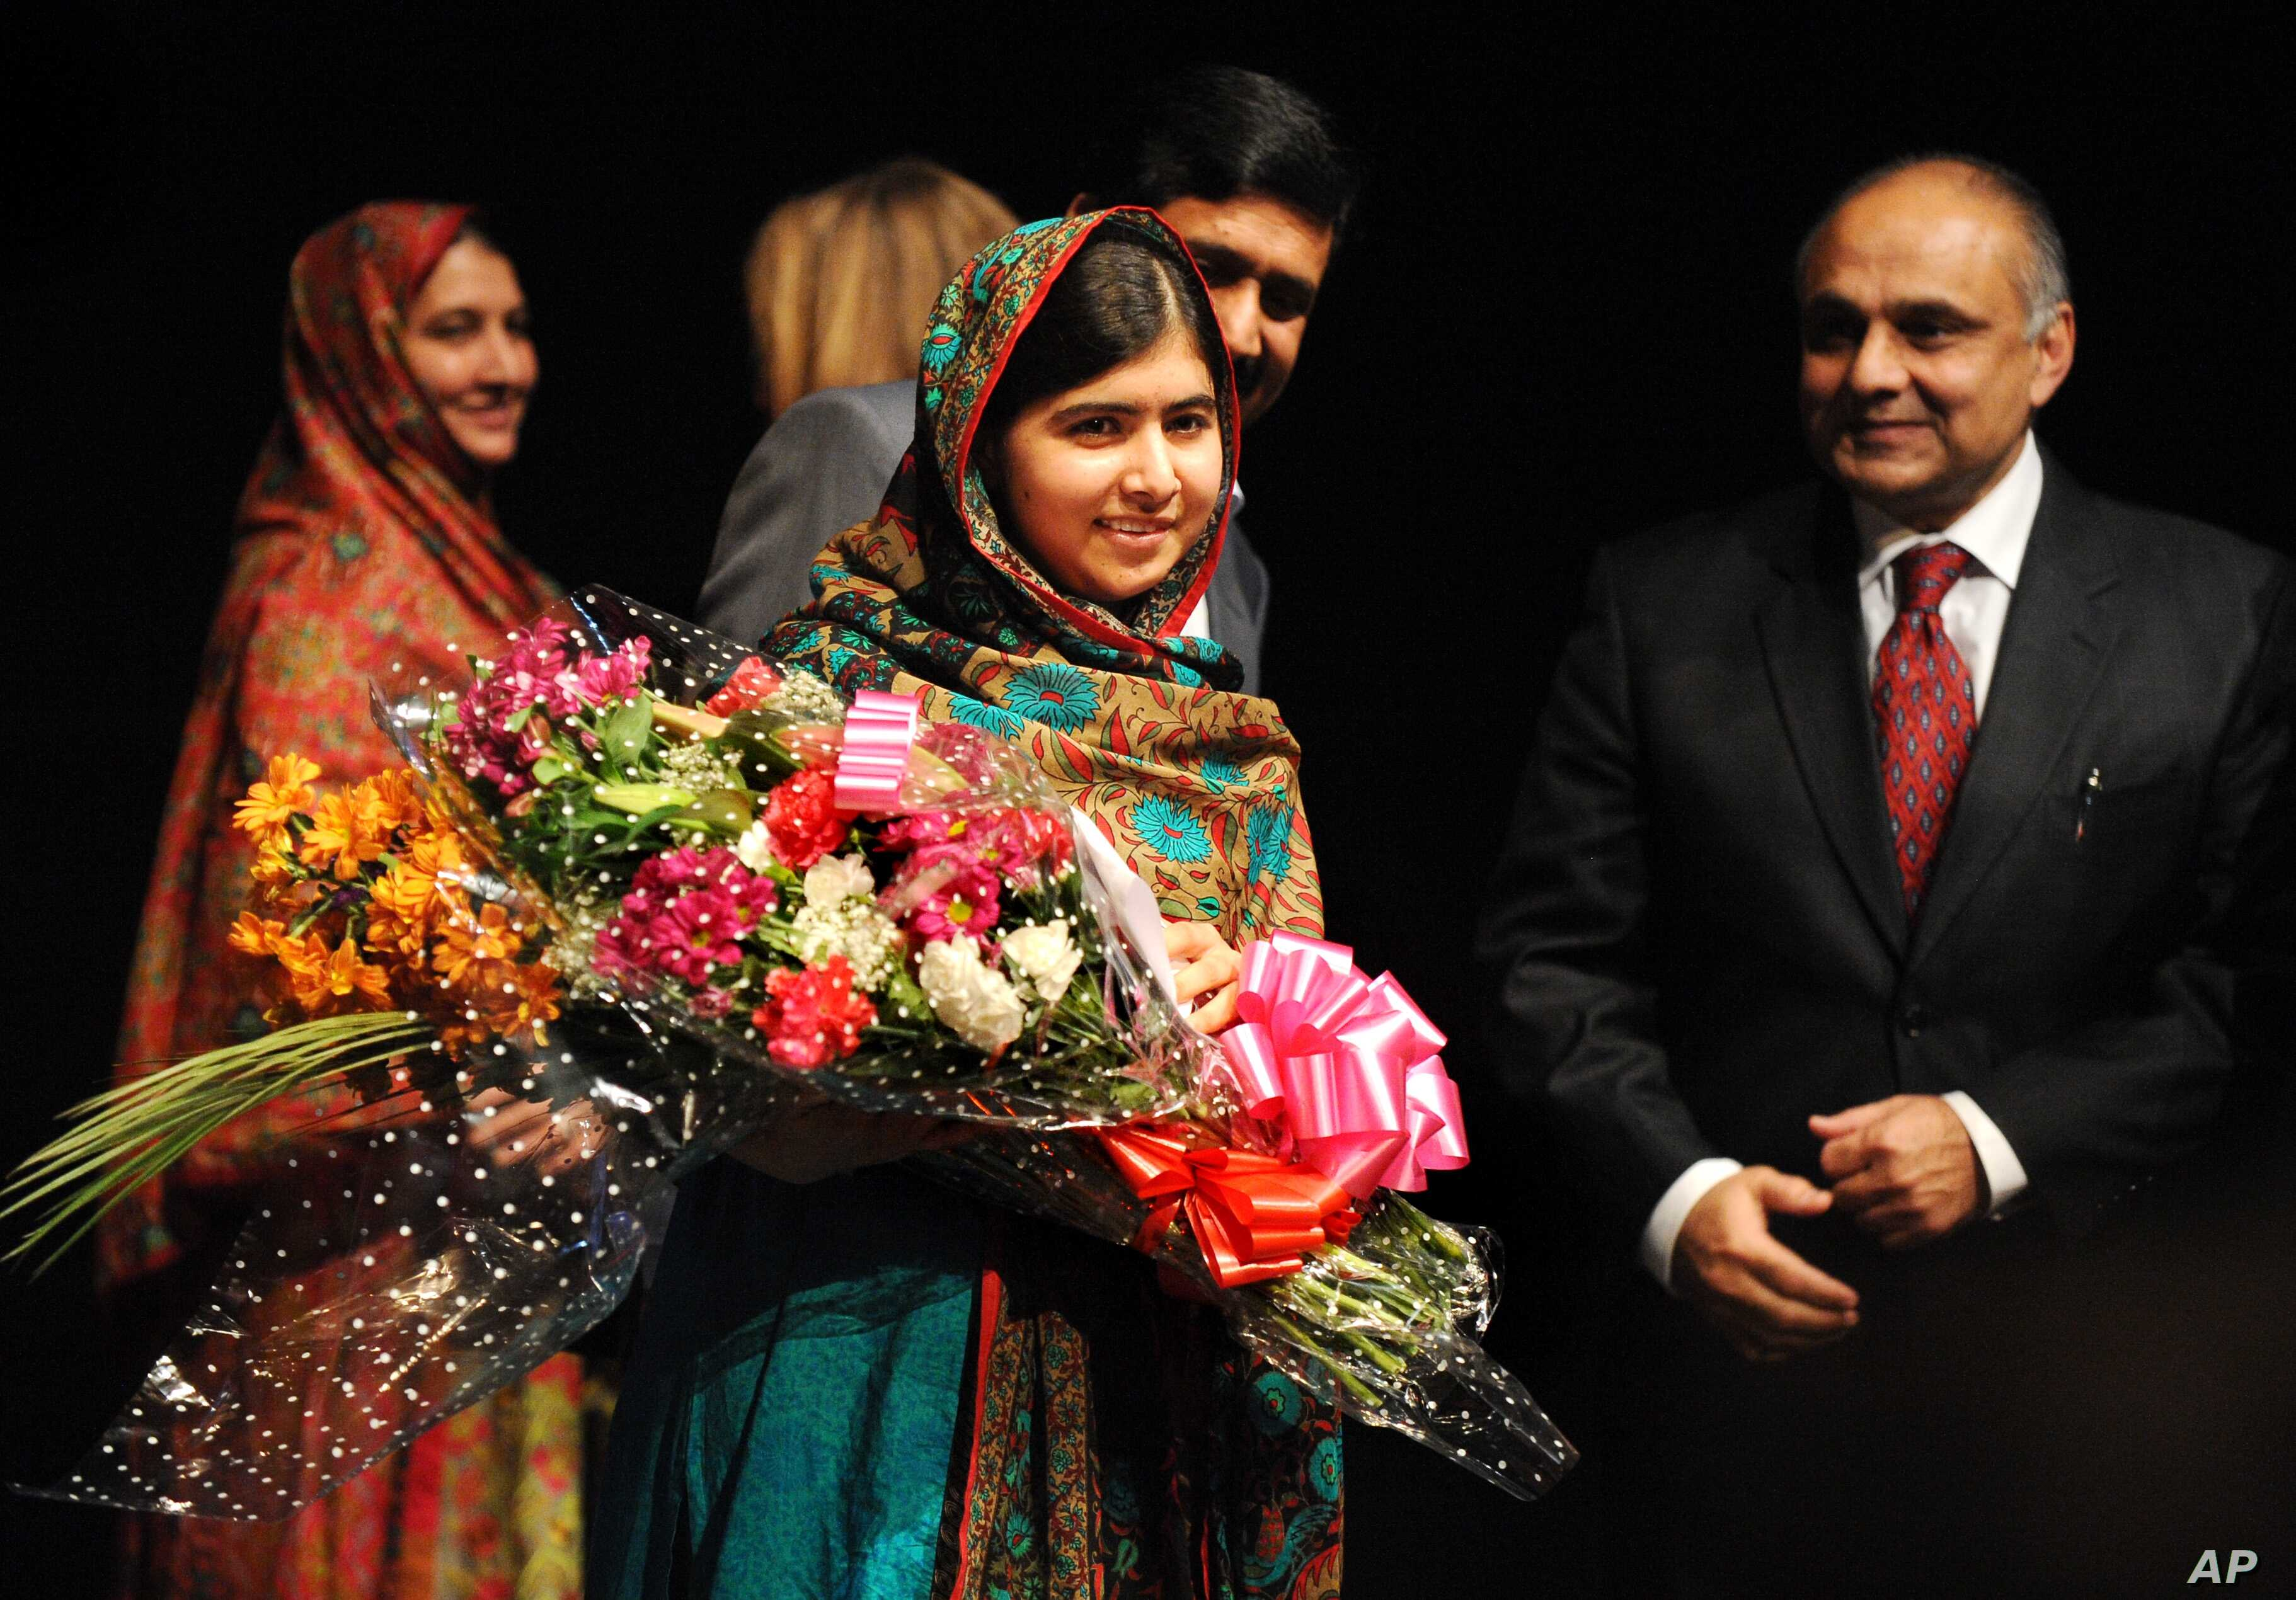 Malala Yousafzai holds flowers after speaking during a media conference at the Library of Birmingham, in Birmingham, England, Oct. 10, 2014, after she was named as winner of The Nobel Peace Prize.